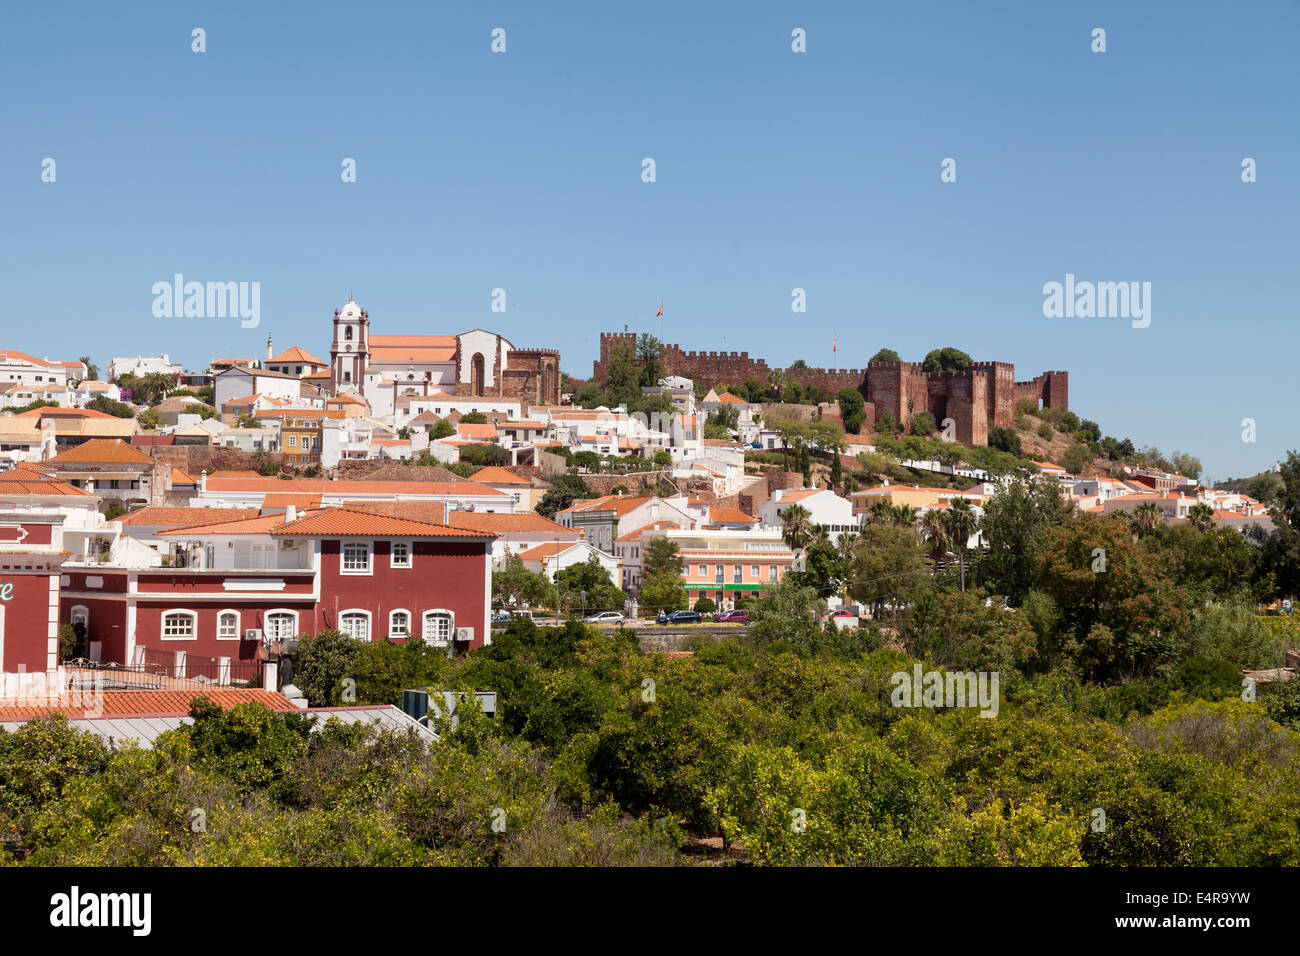 Skyline view of the town of Silves with moorish castle and cathedral, Algarve, Portugal Europe Stock Photo